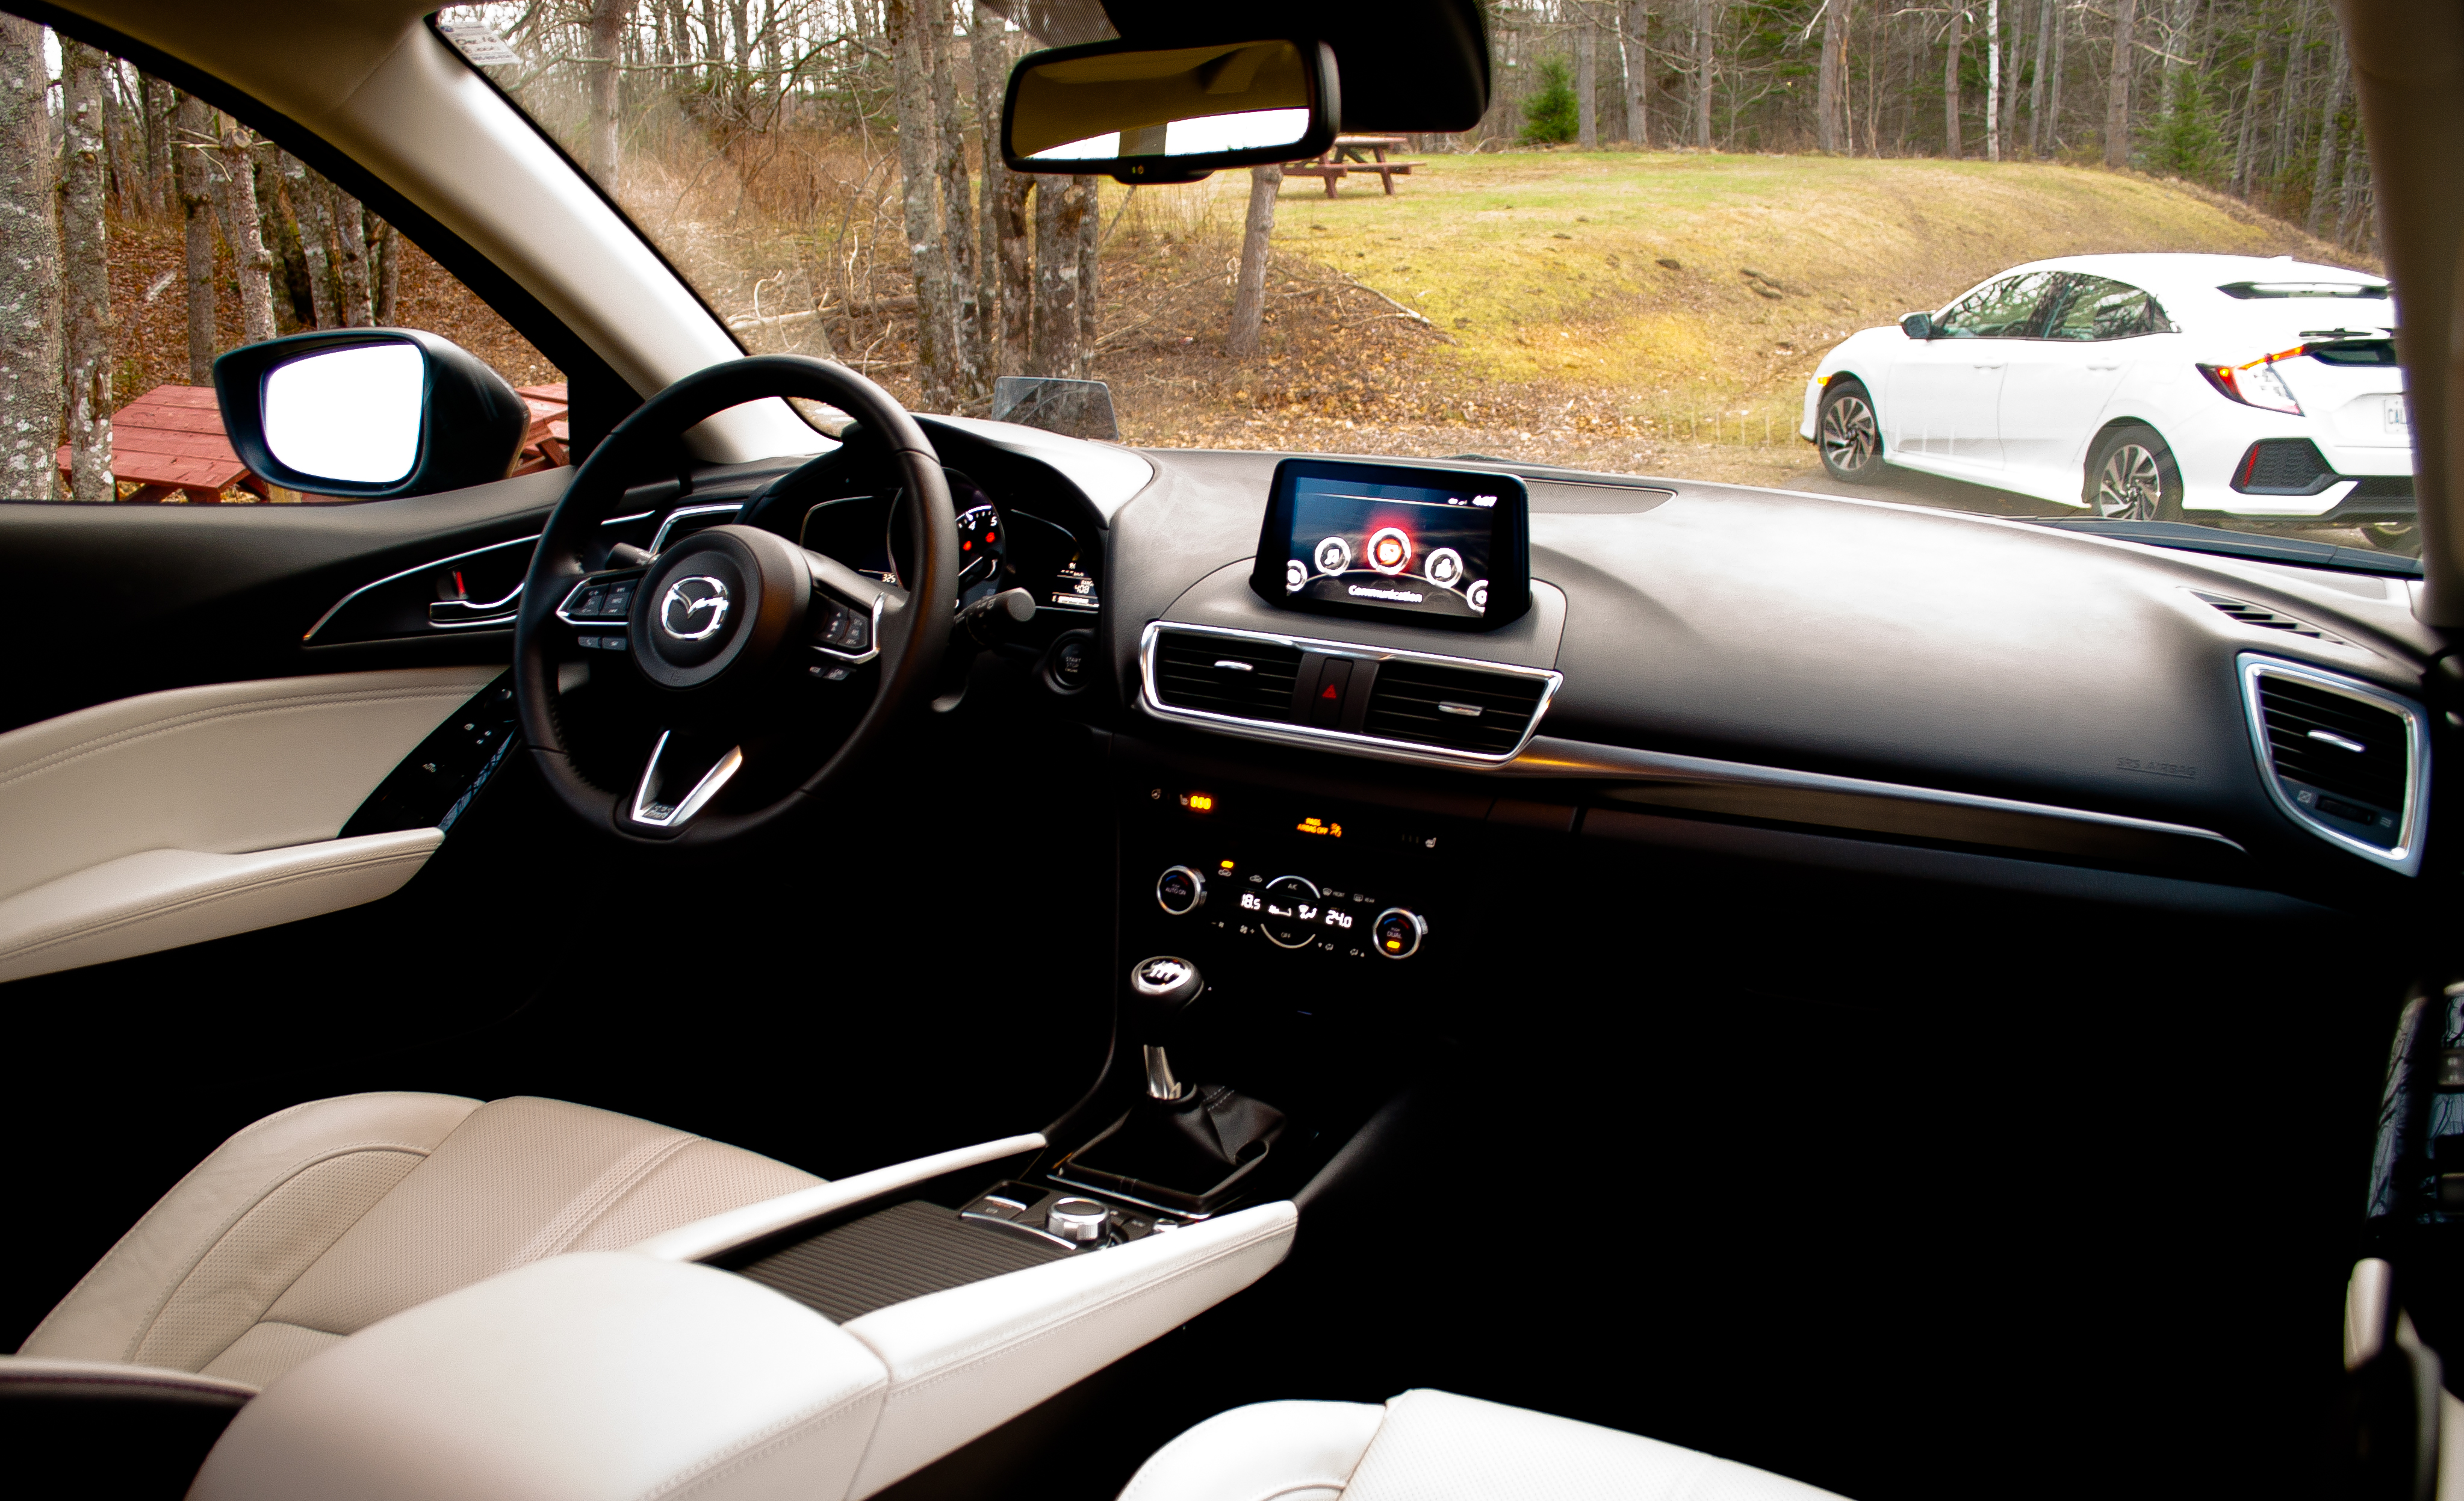 100 2017 all stars contender mazda mazda 2 review specification price caradvice 2016. Black Bedroom Furniture Sets. Home Design Ideas